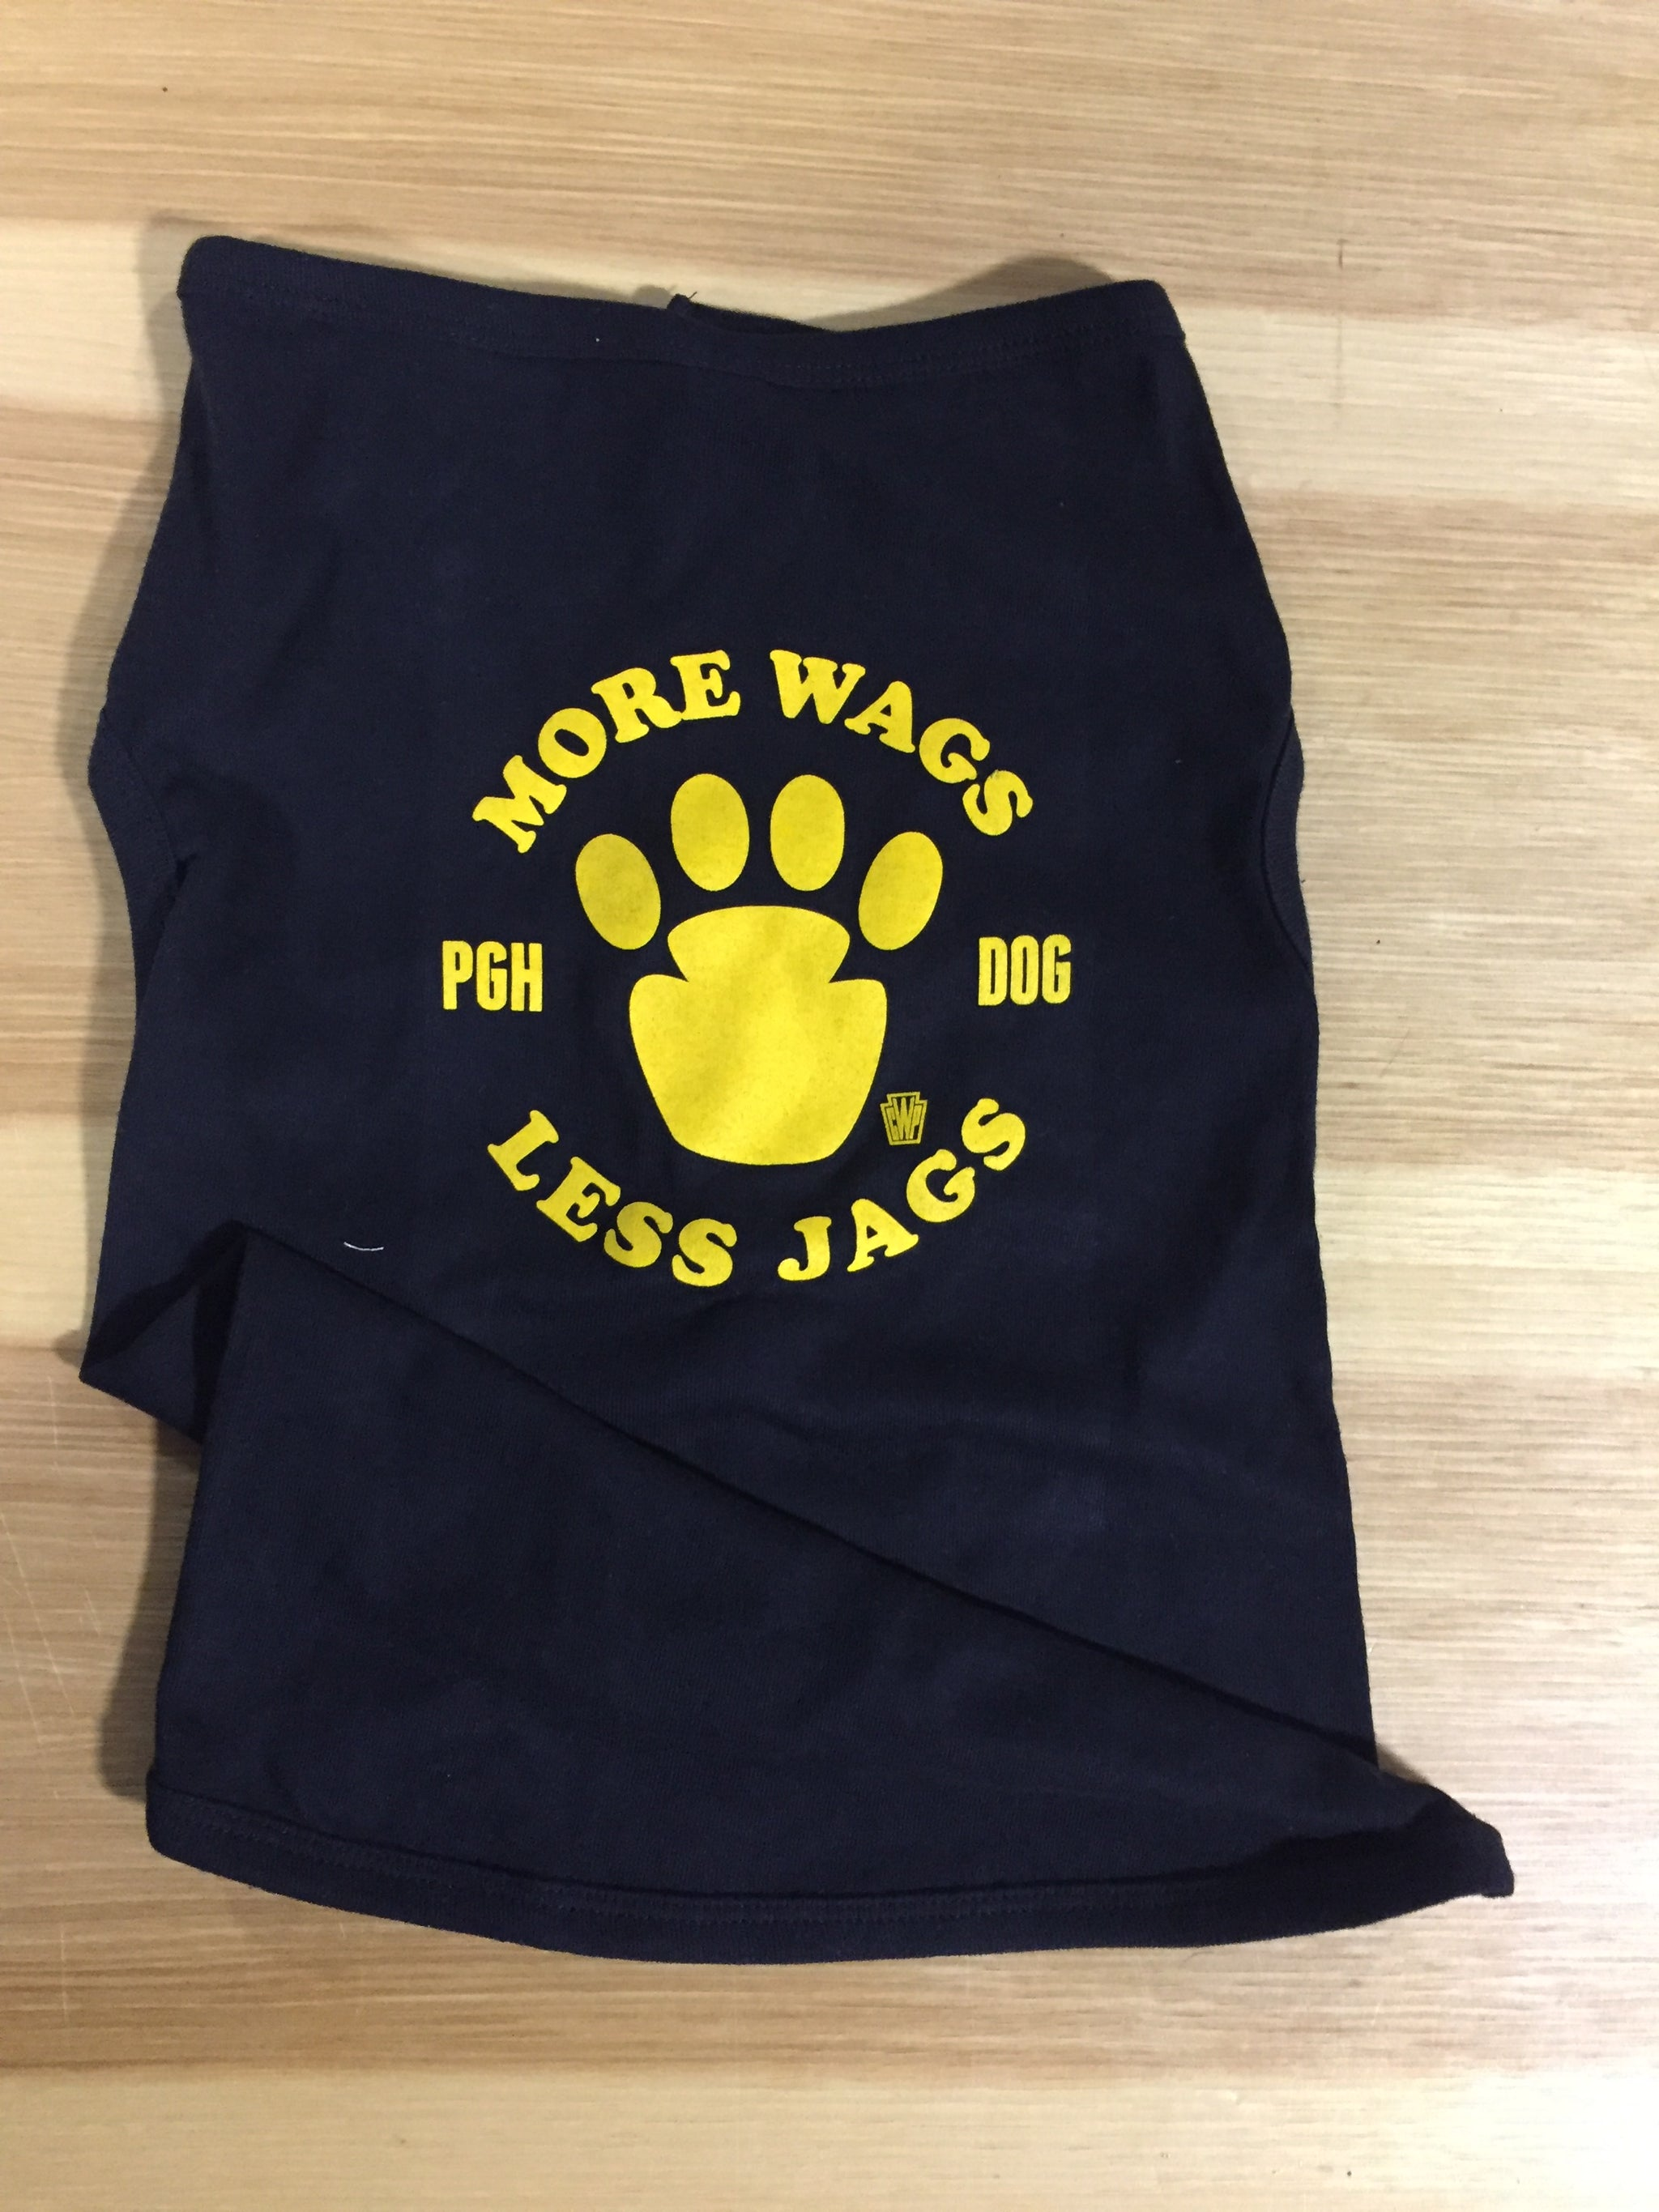 More Wags Less Jags Dog Shirts